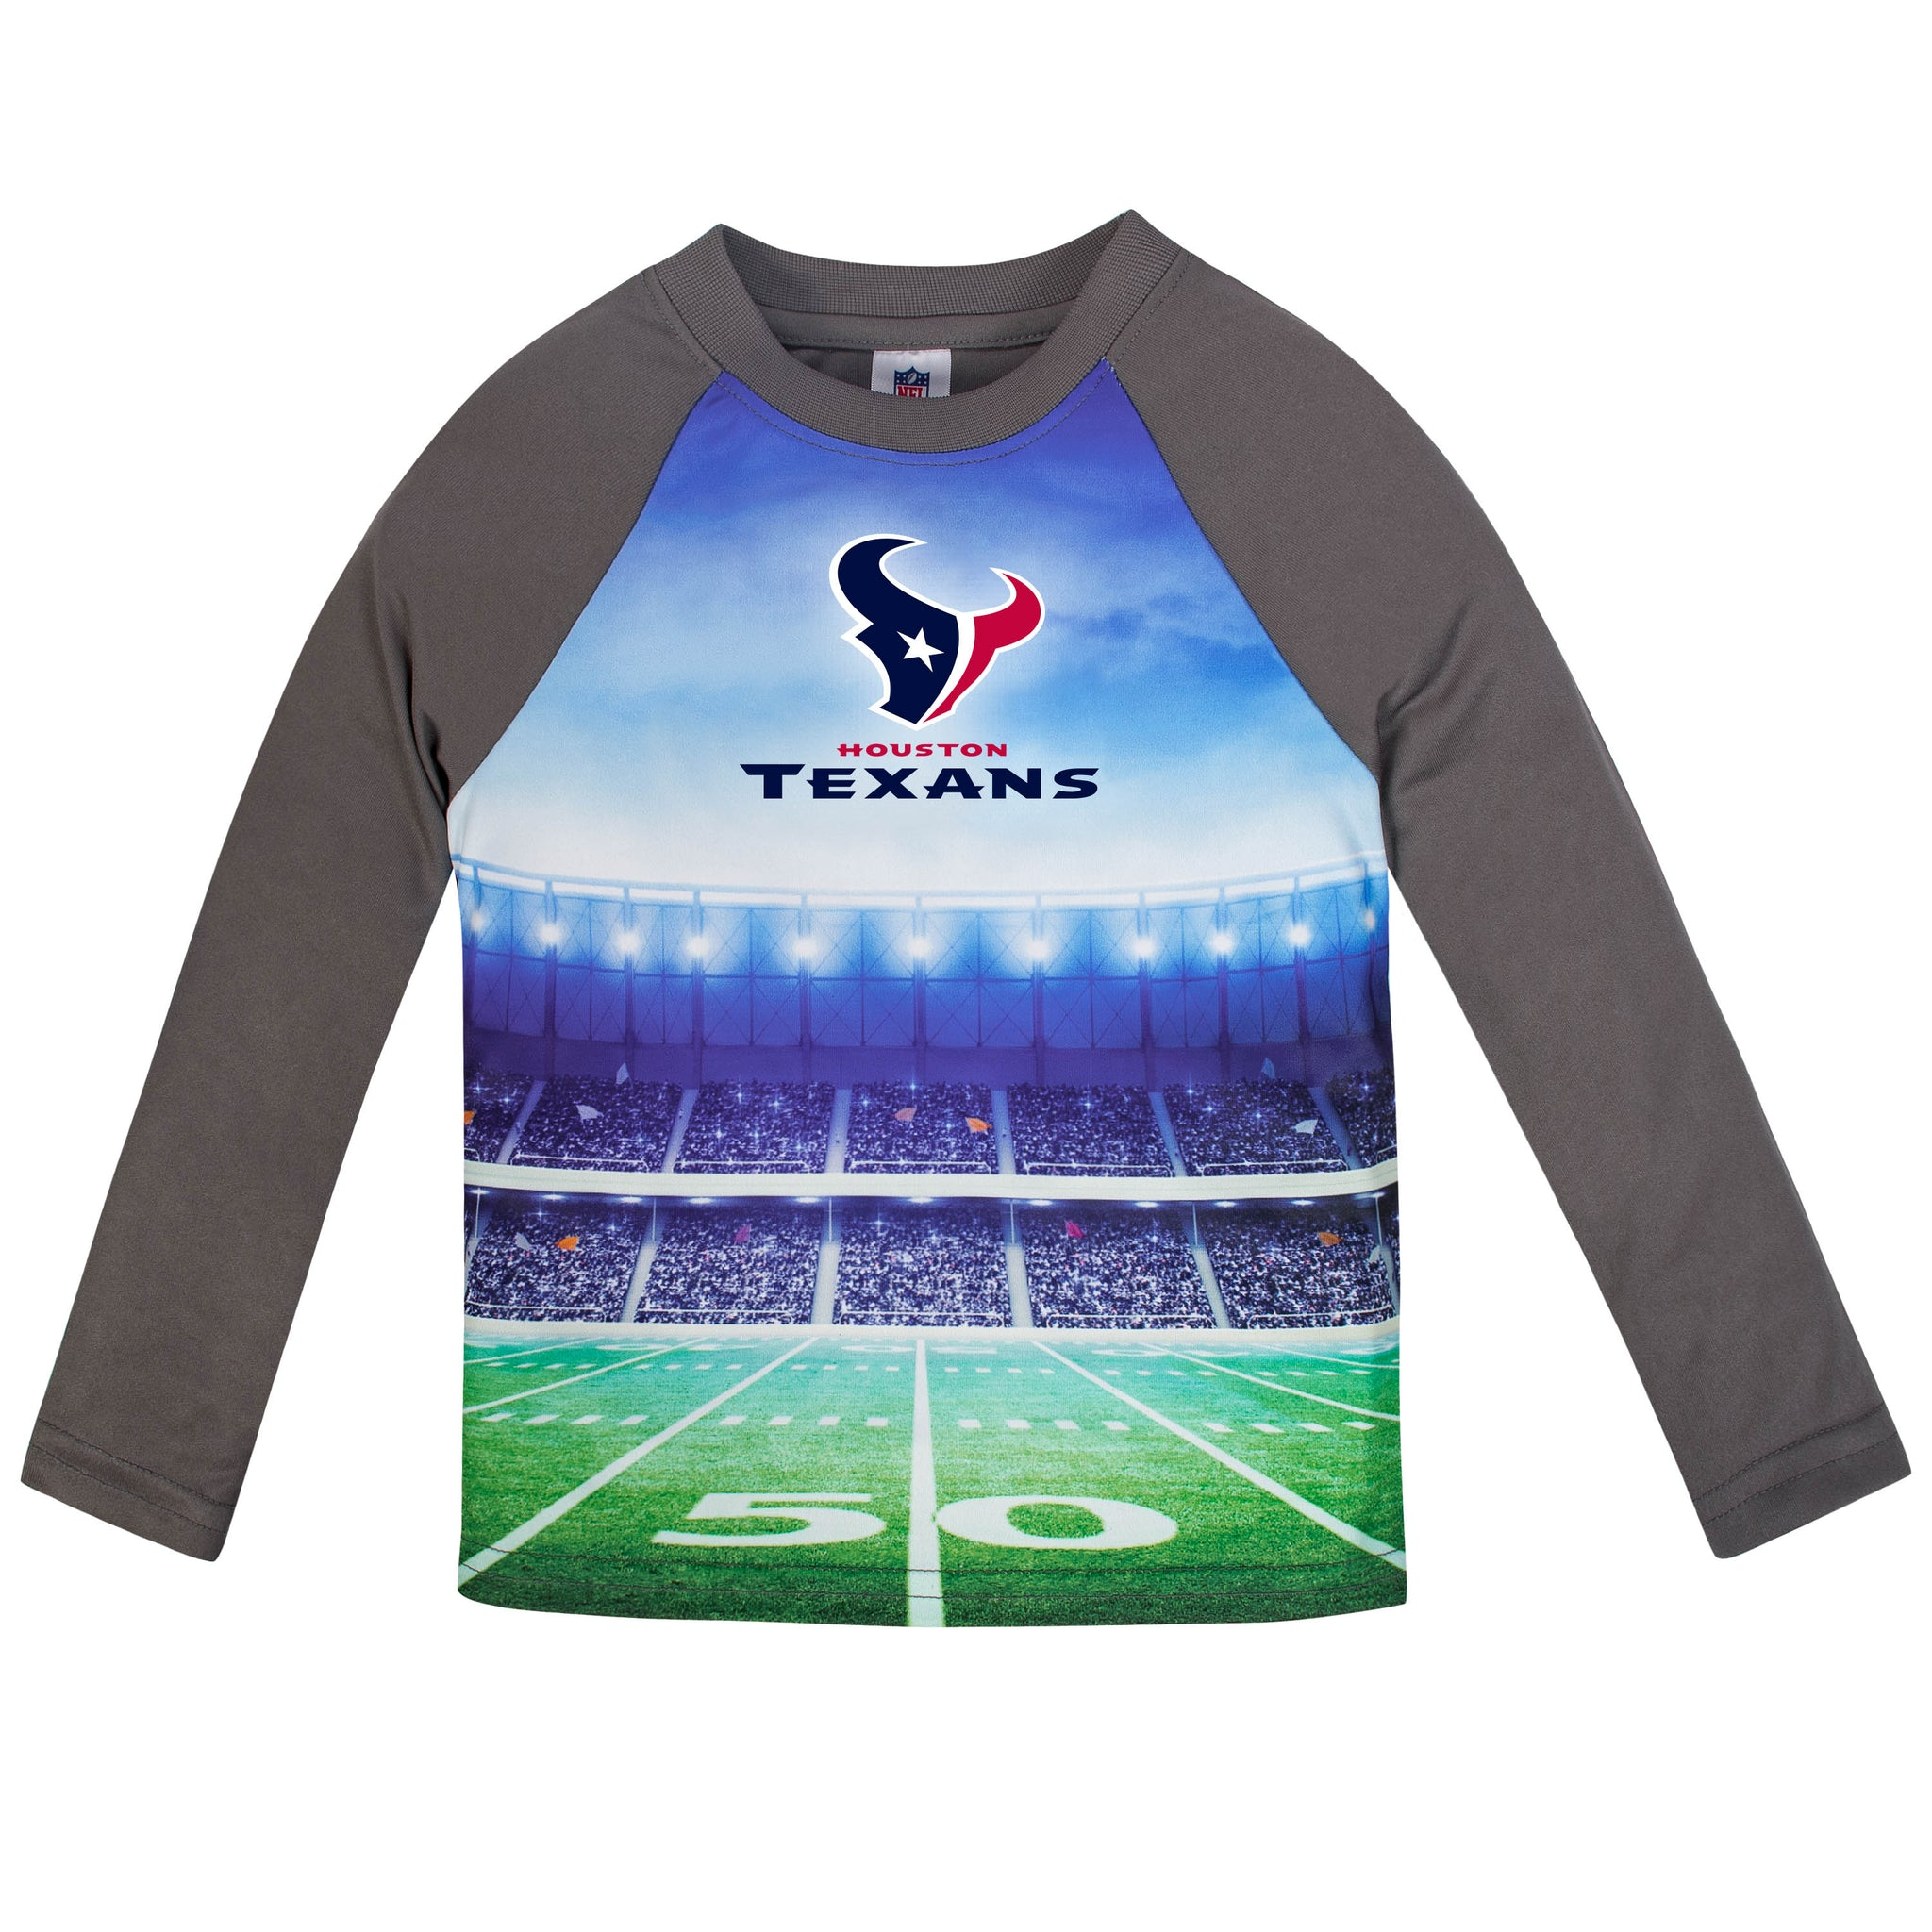 Houston Texans Boys Long Sleeve Tee Shirt-Gerber Childrenswear